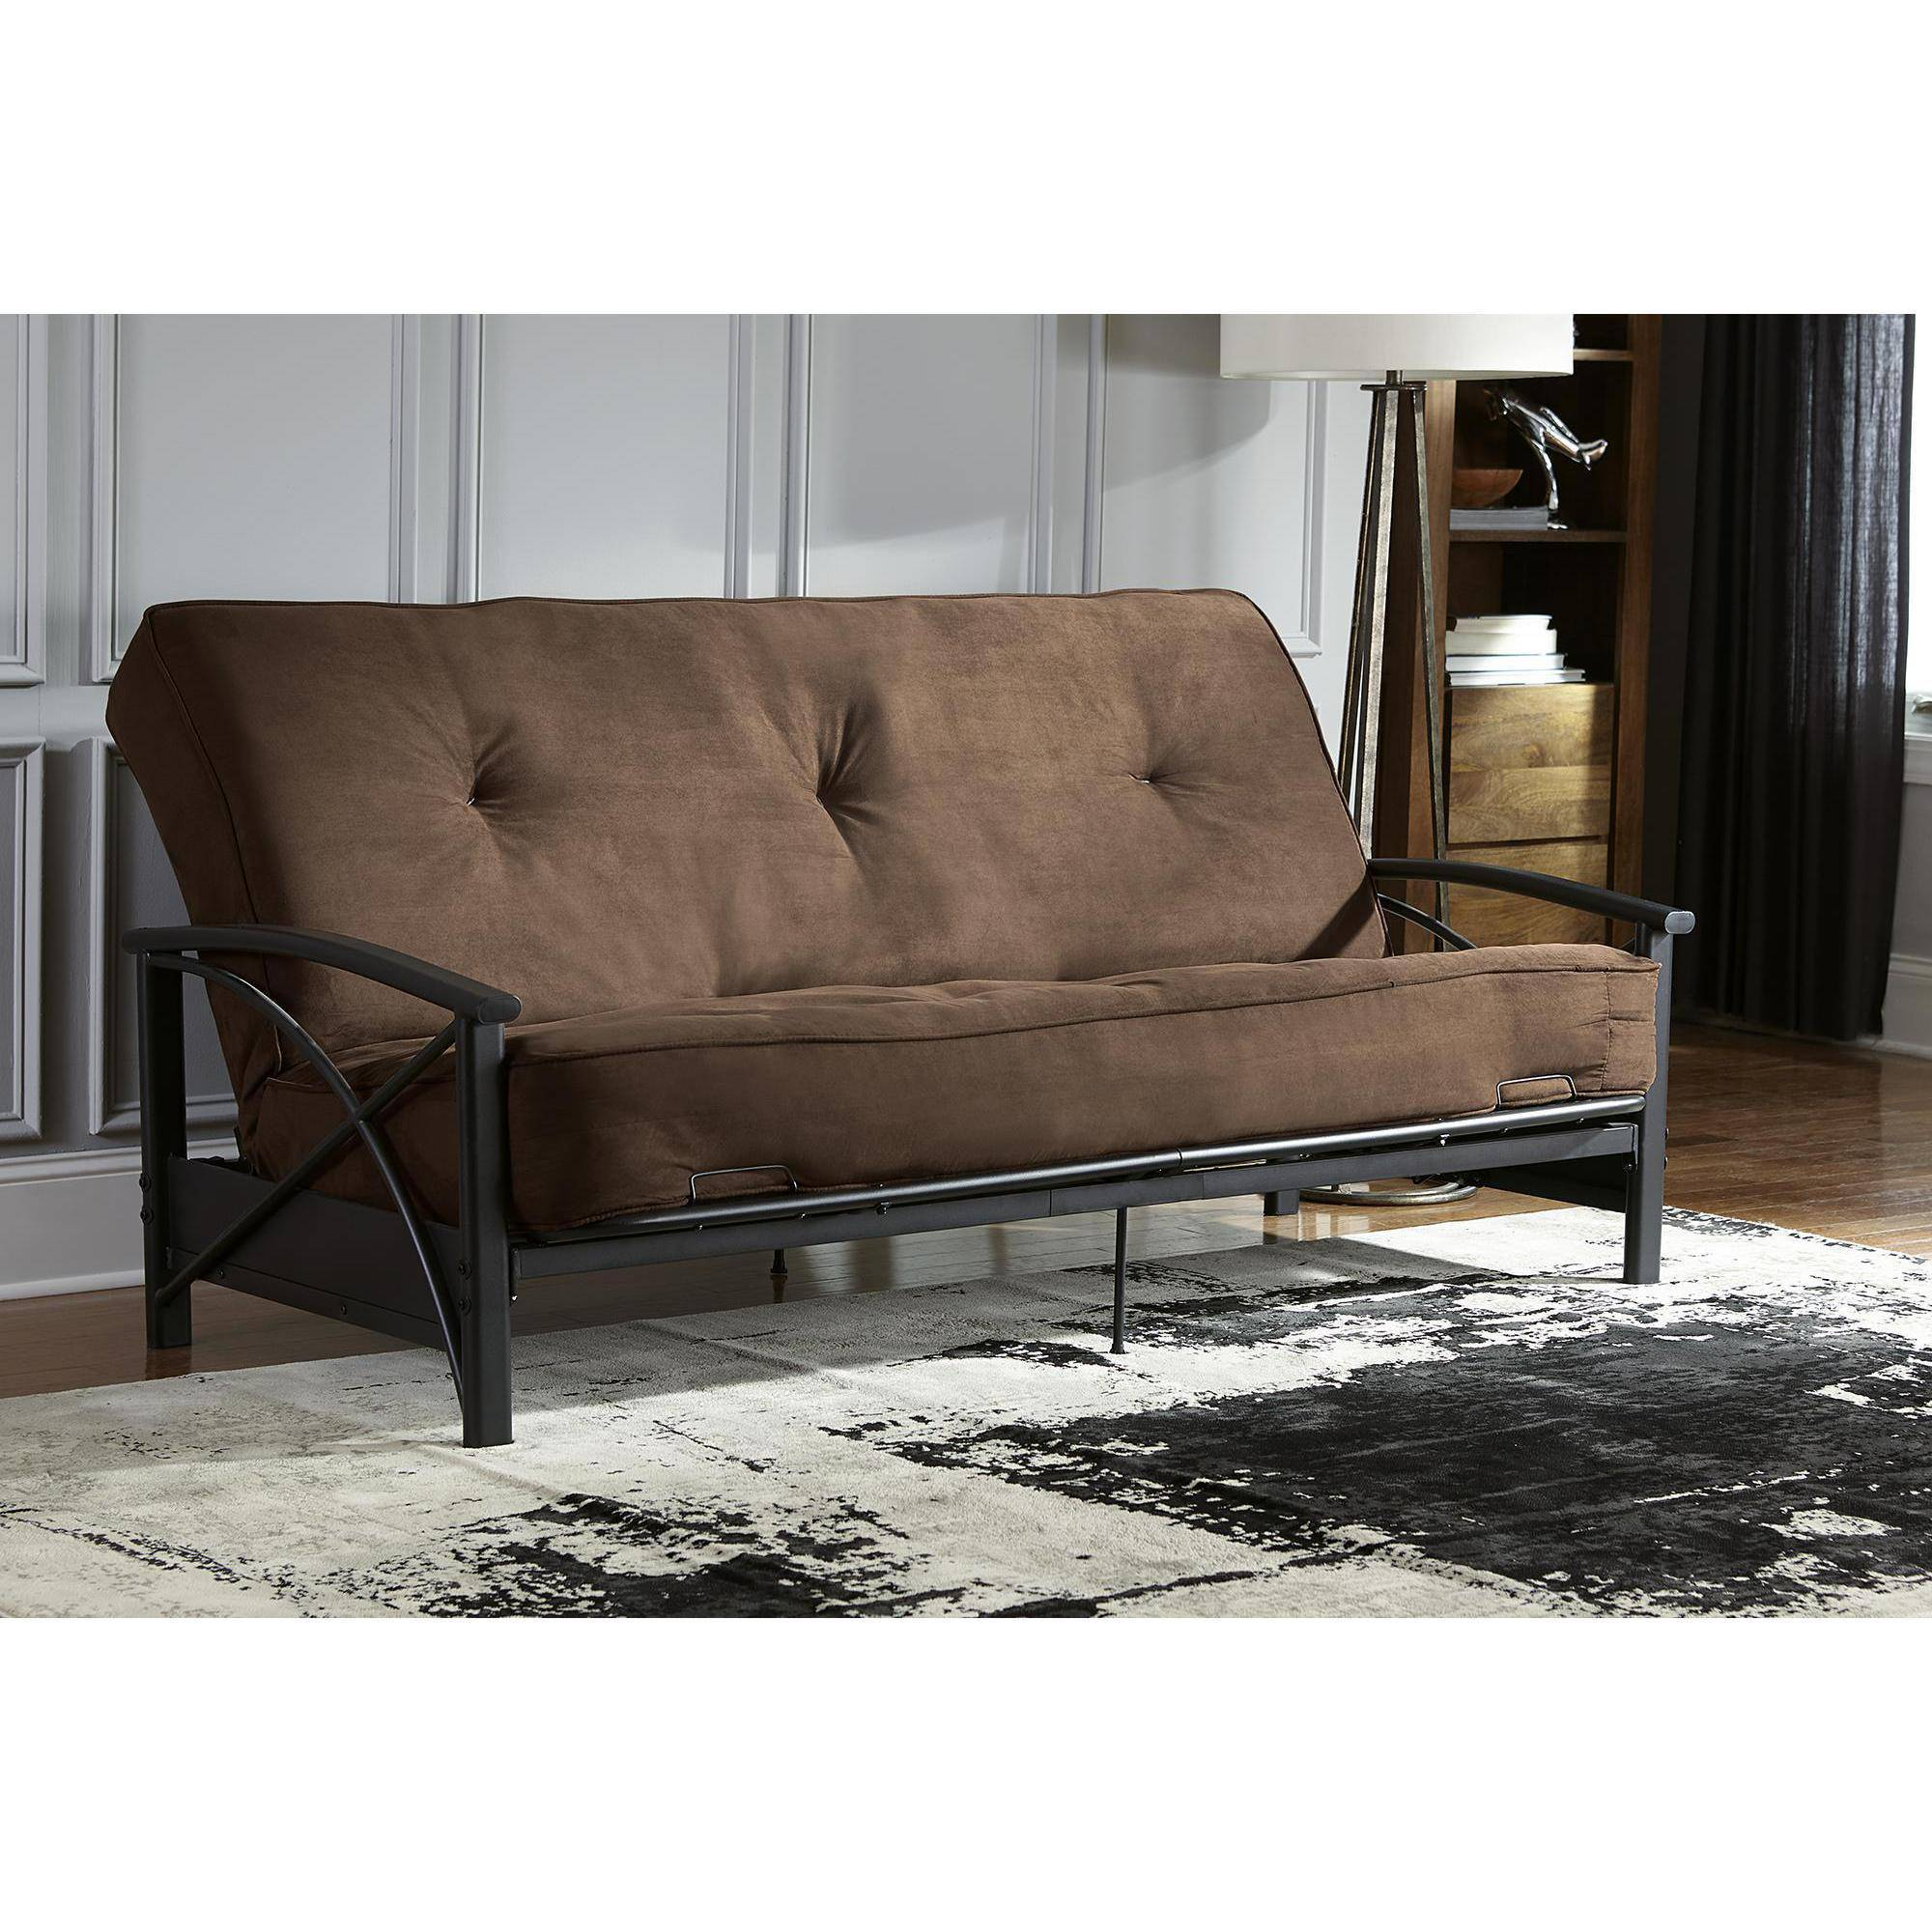 bm loveseat contemporary furnititure futon sleeper